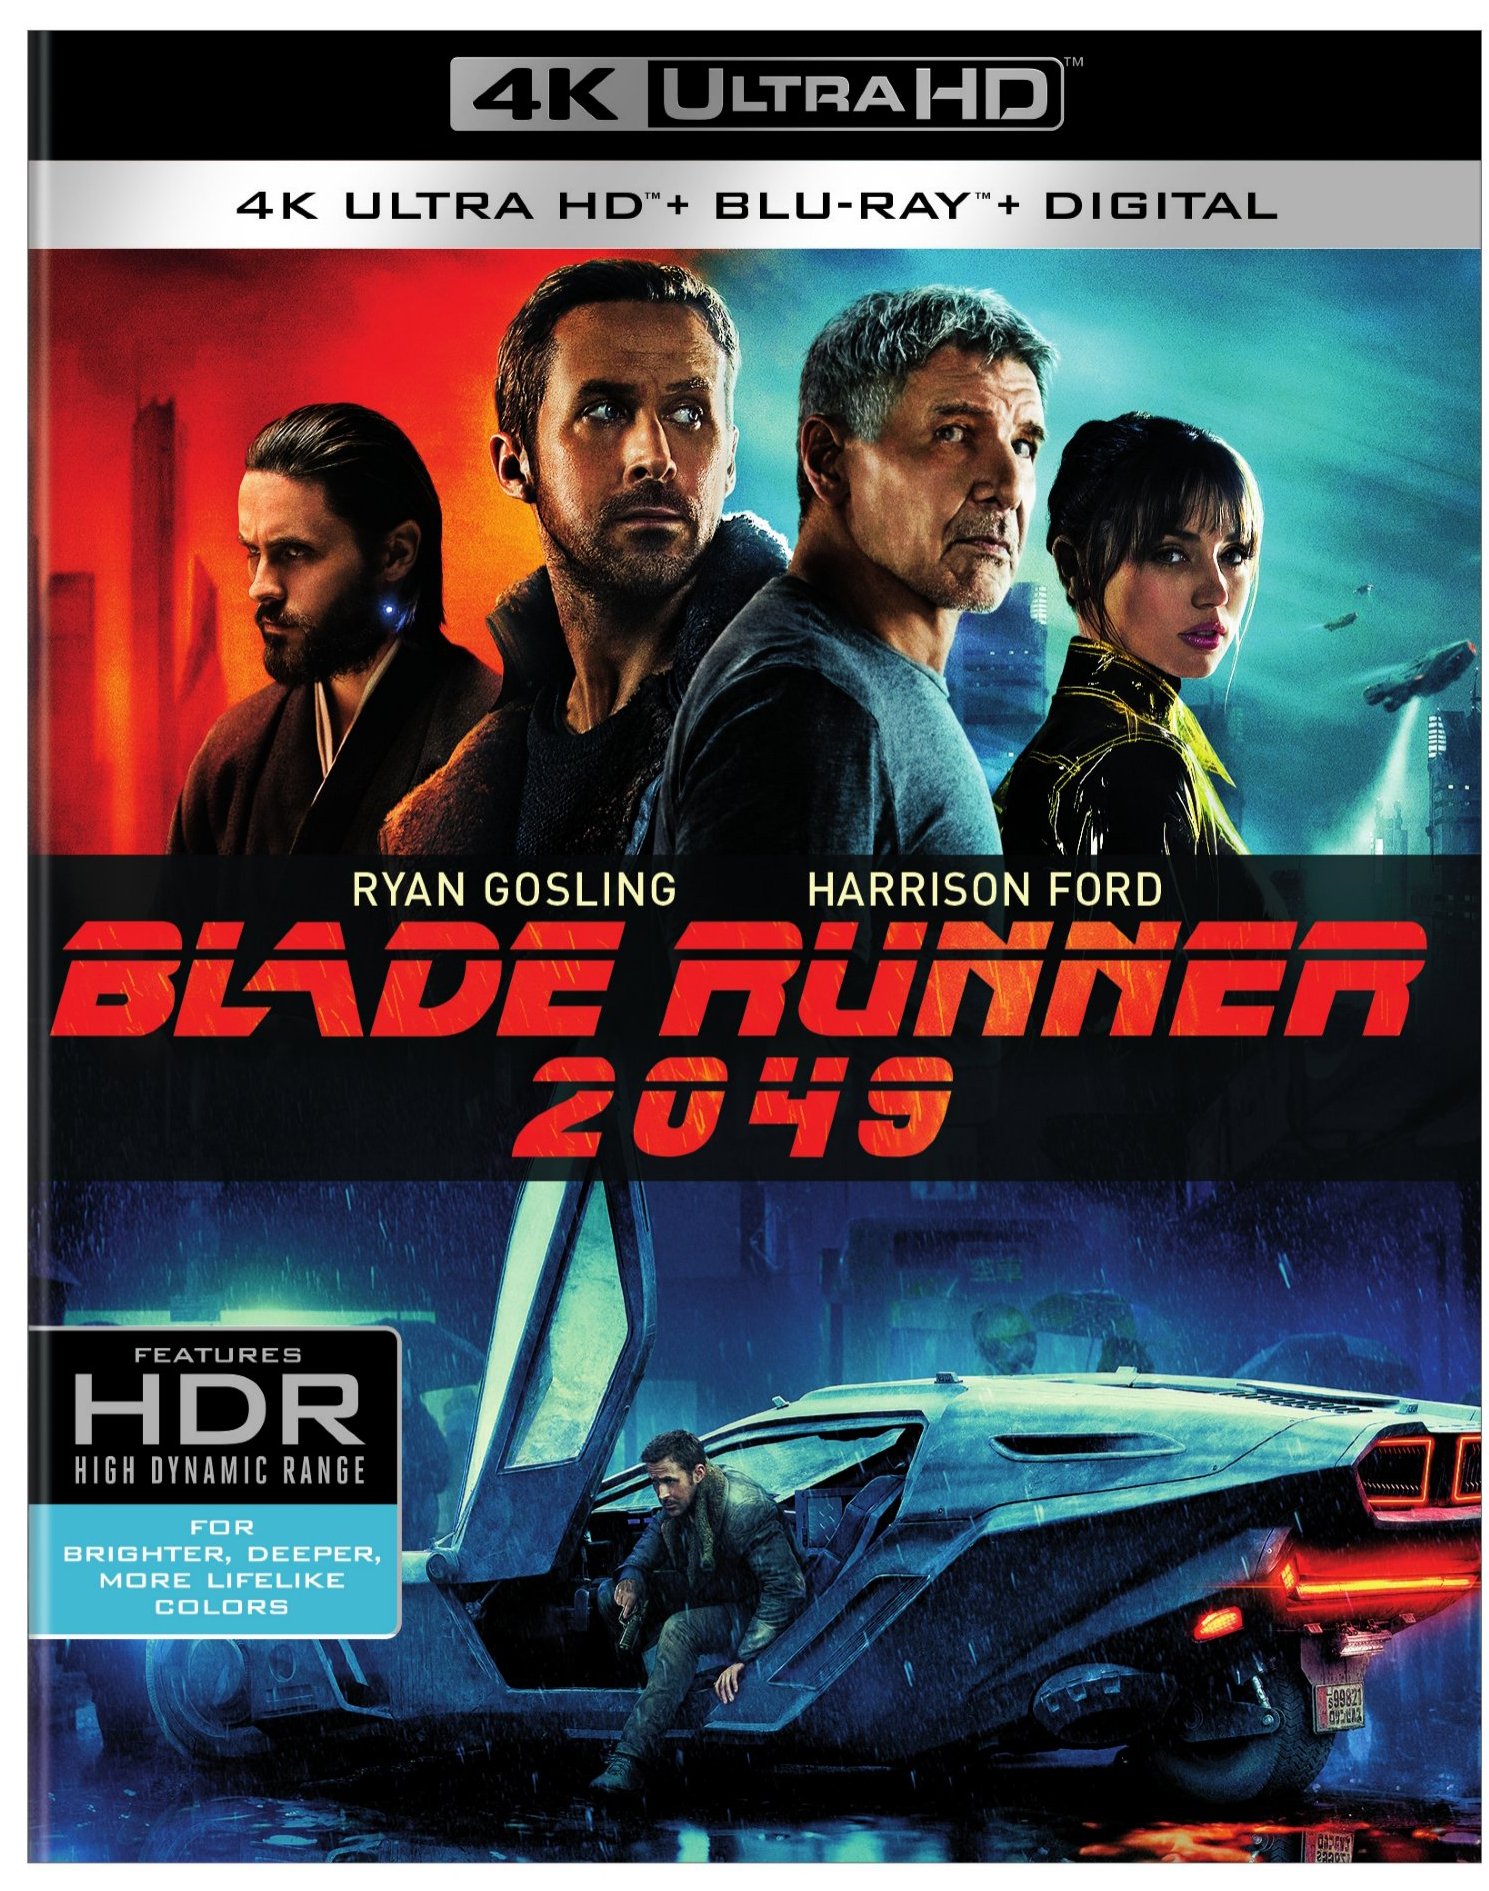 Blade Runner 2049 (4K Ultra HD + Blu-ray + Digital) by WARNER HOME VIDEO